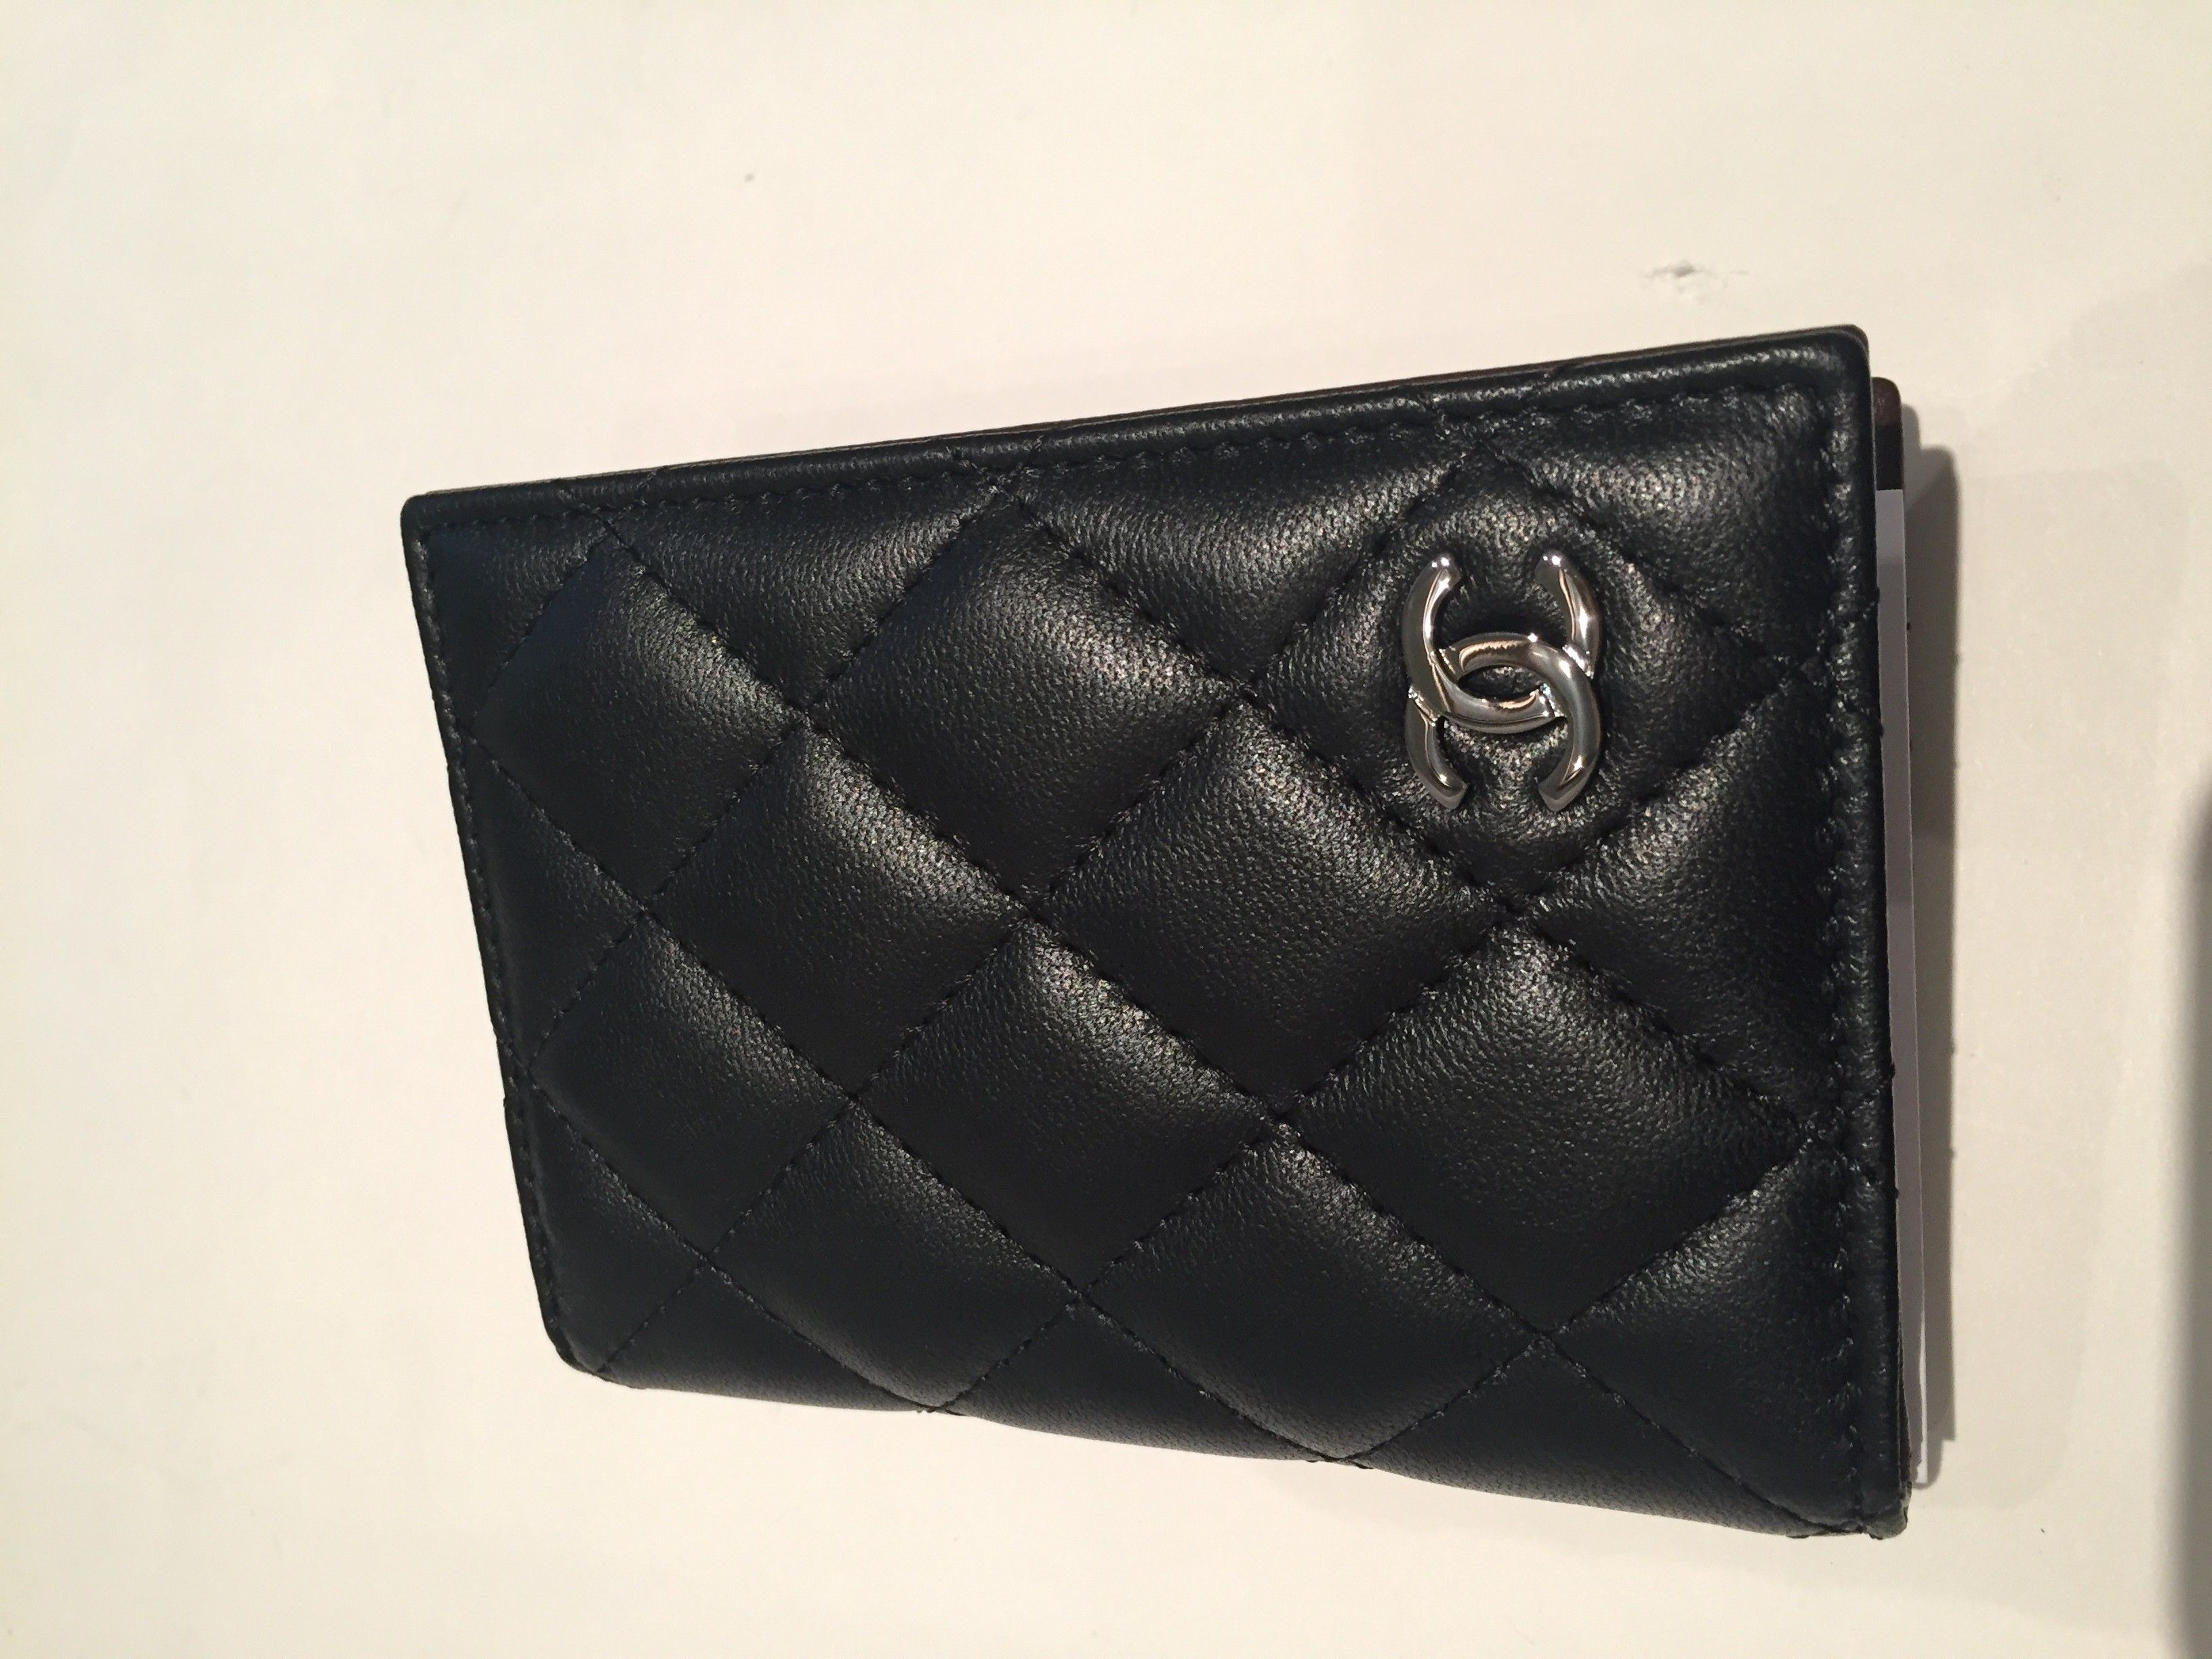 Chanel id card holder chanel card holder french wallet